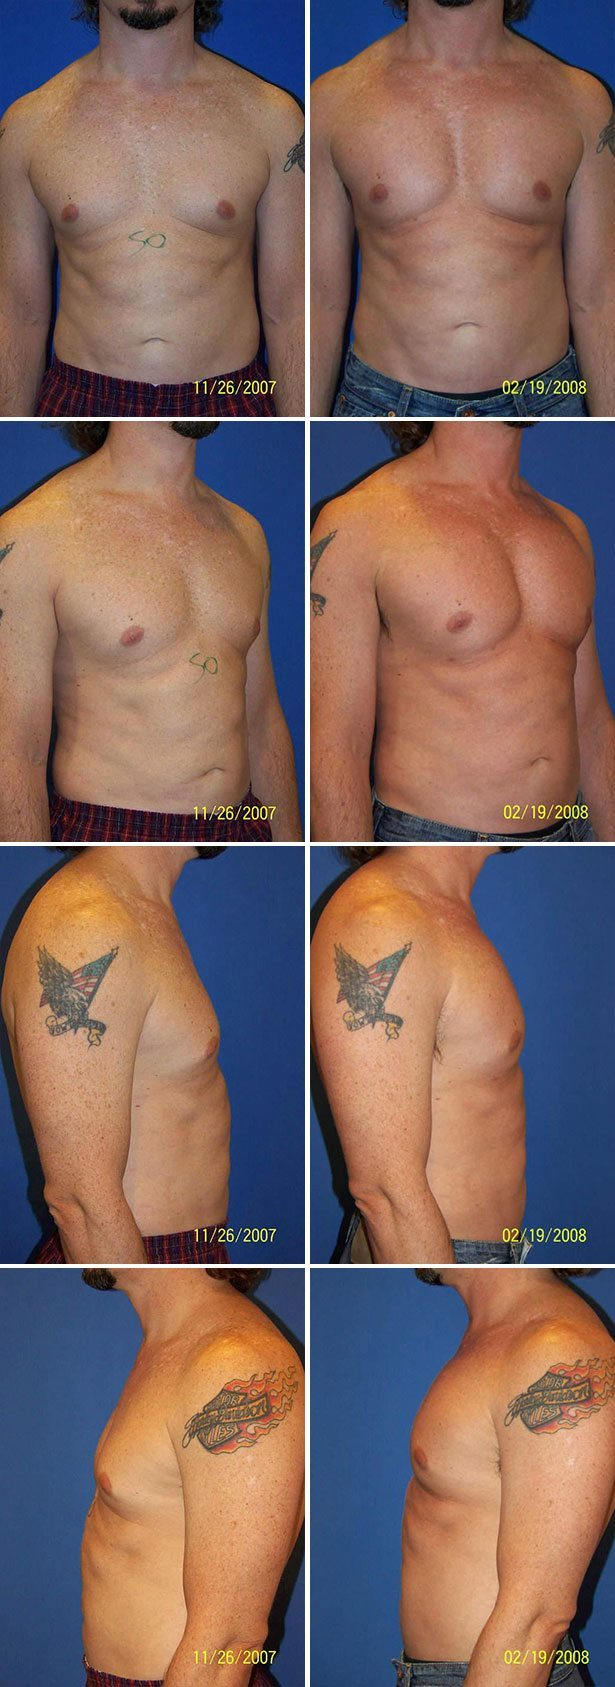 Male Pectoral Implants Dr G Cosmetic Surgery